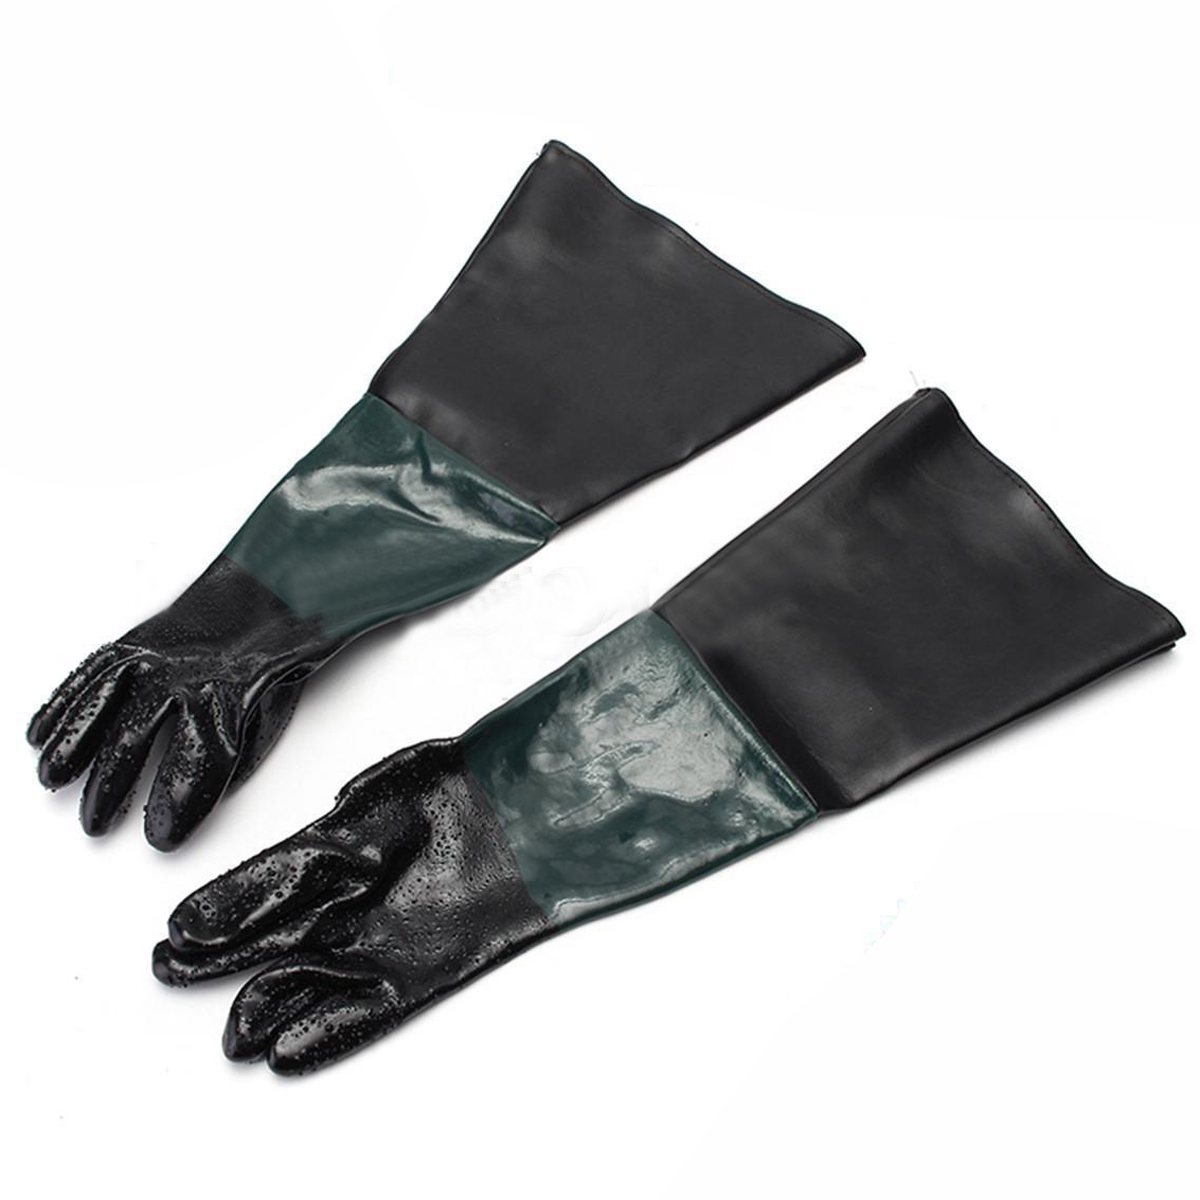 1 Pair Of Heavy Duty Gloves Soft PVC Vinyl Sandblasting Gloves 60cm For Sandblaster Sand Blast Cabinet Sandblasting Machine